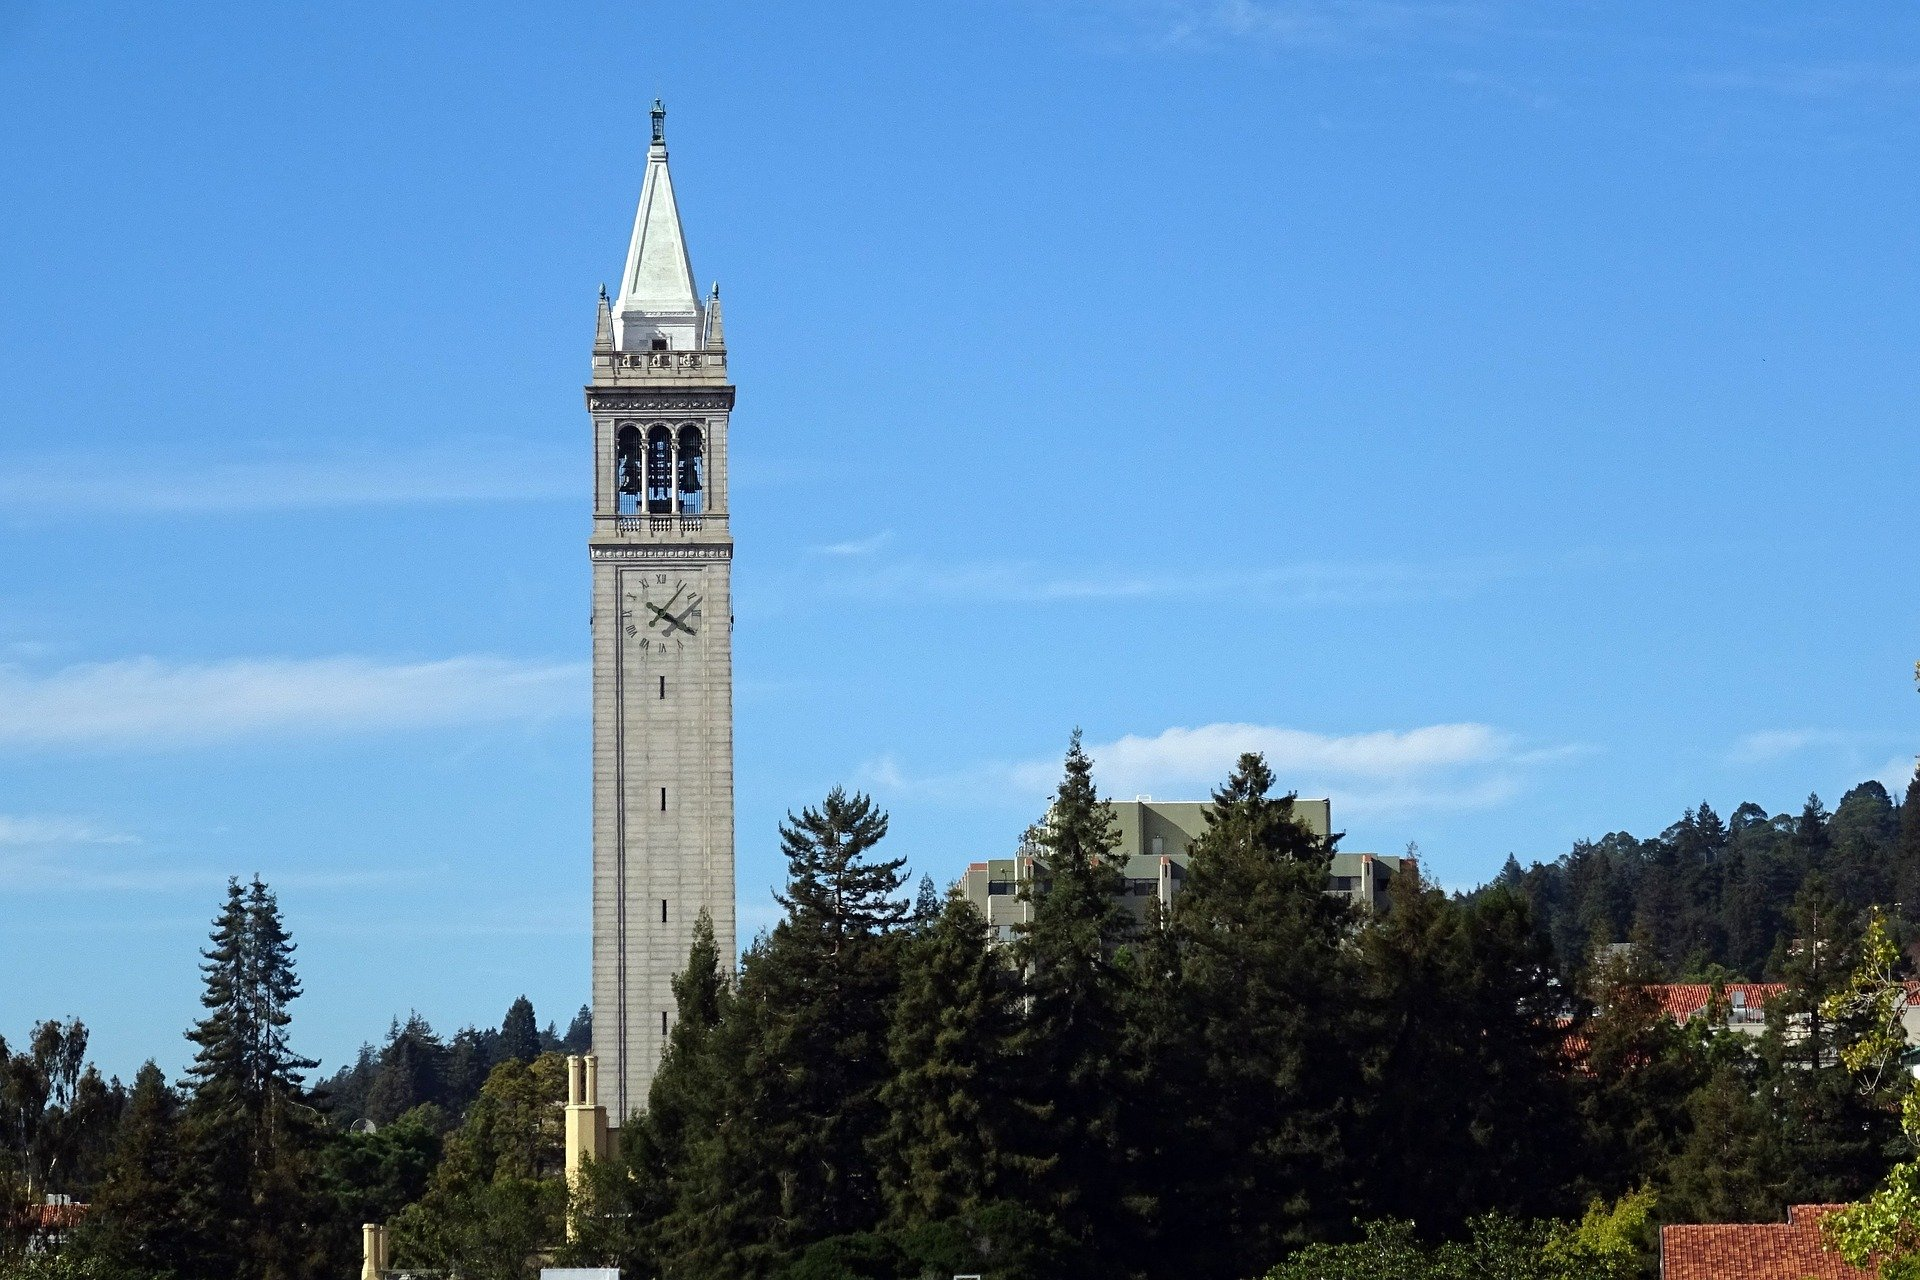 Sather Tower in Berkeley California - VeteranCarDonations.org